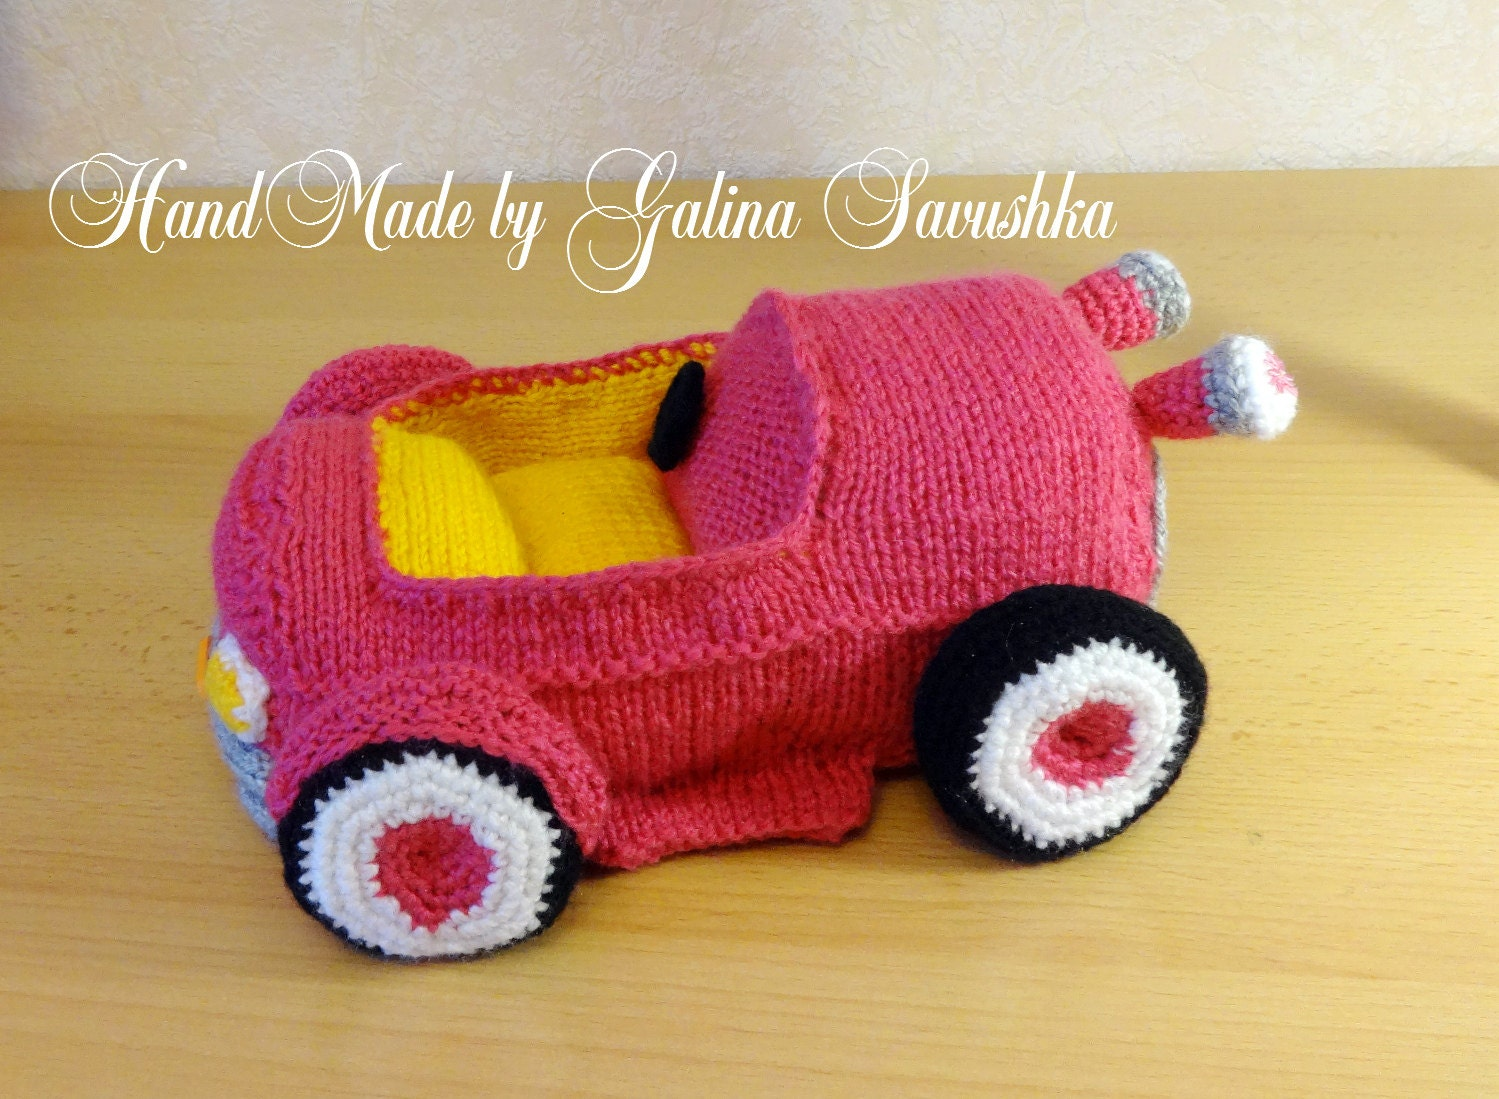 Knitted Car-cabriolet by SavushkaDesigns on Etsy